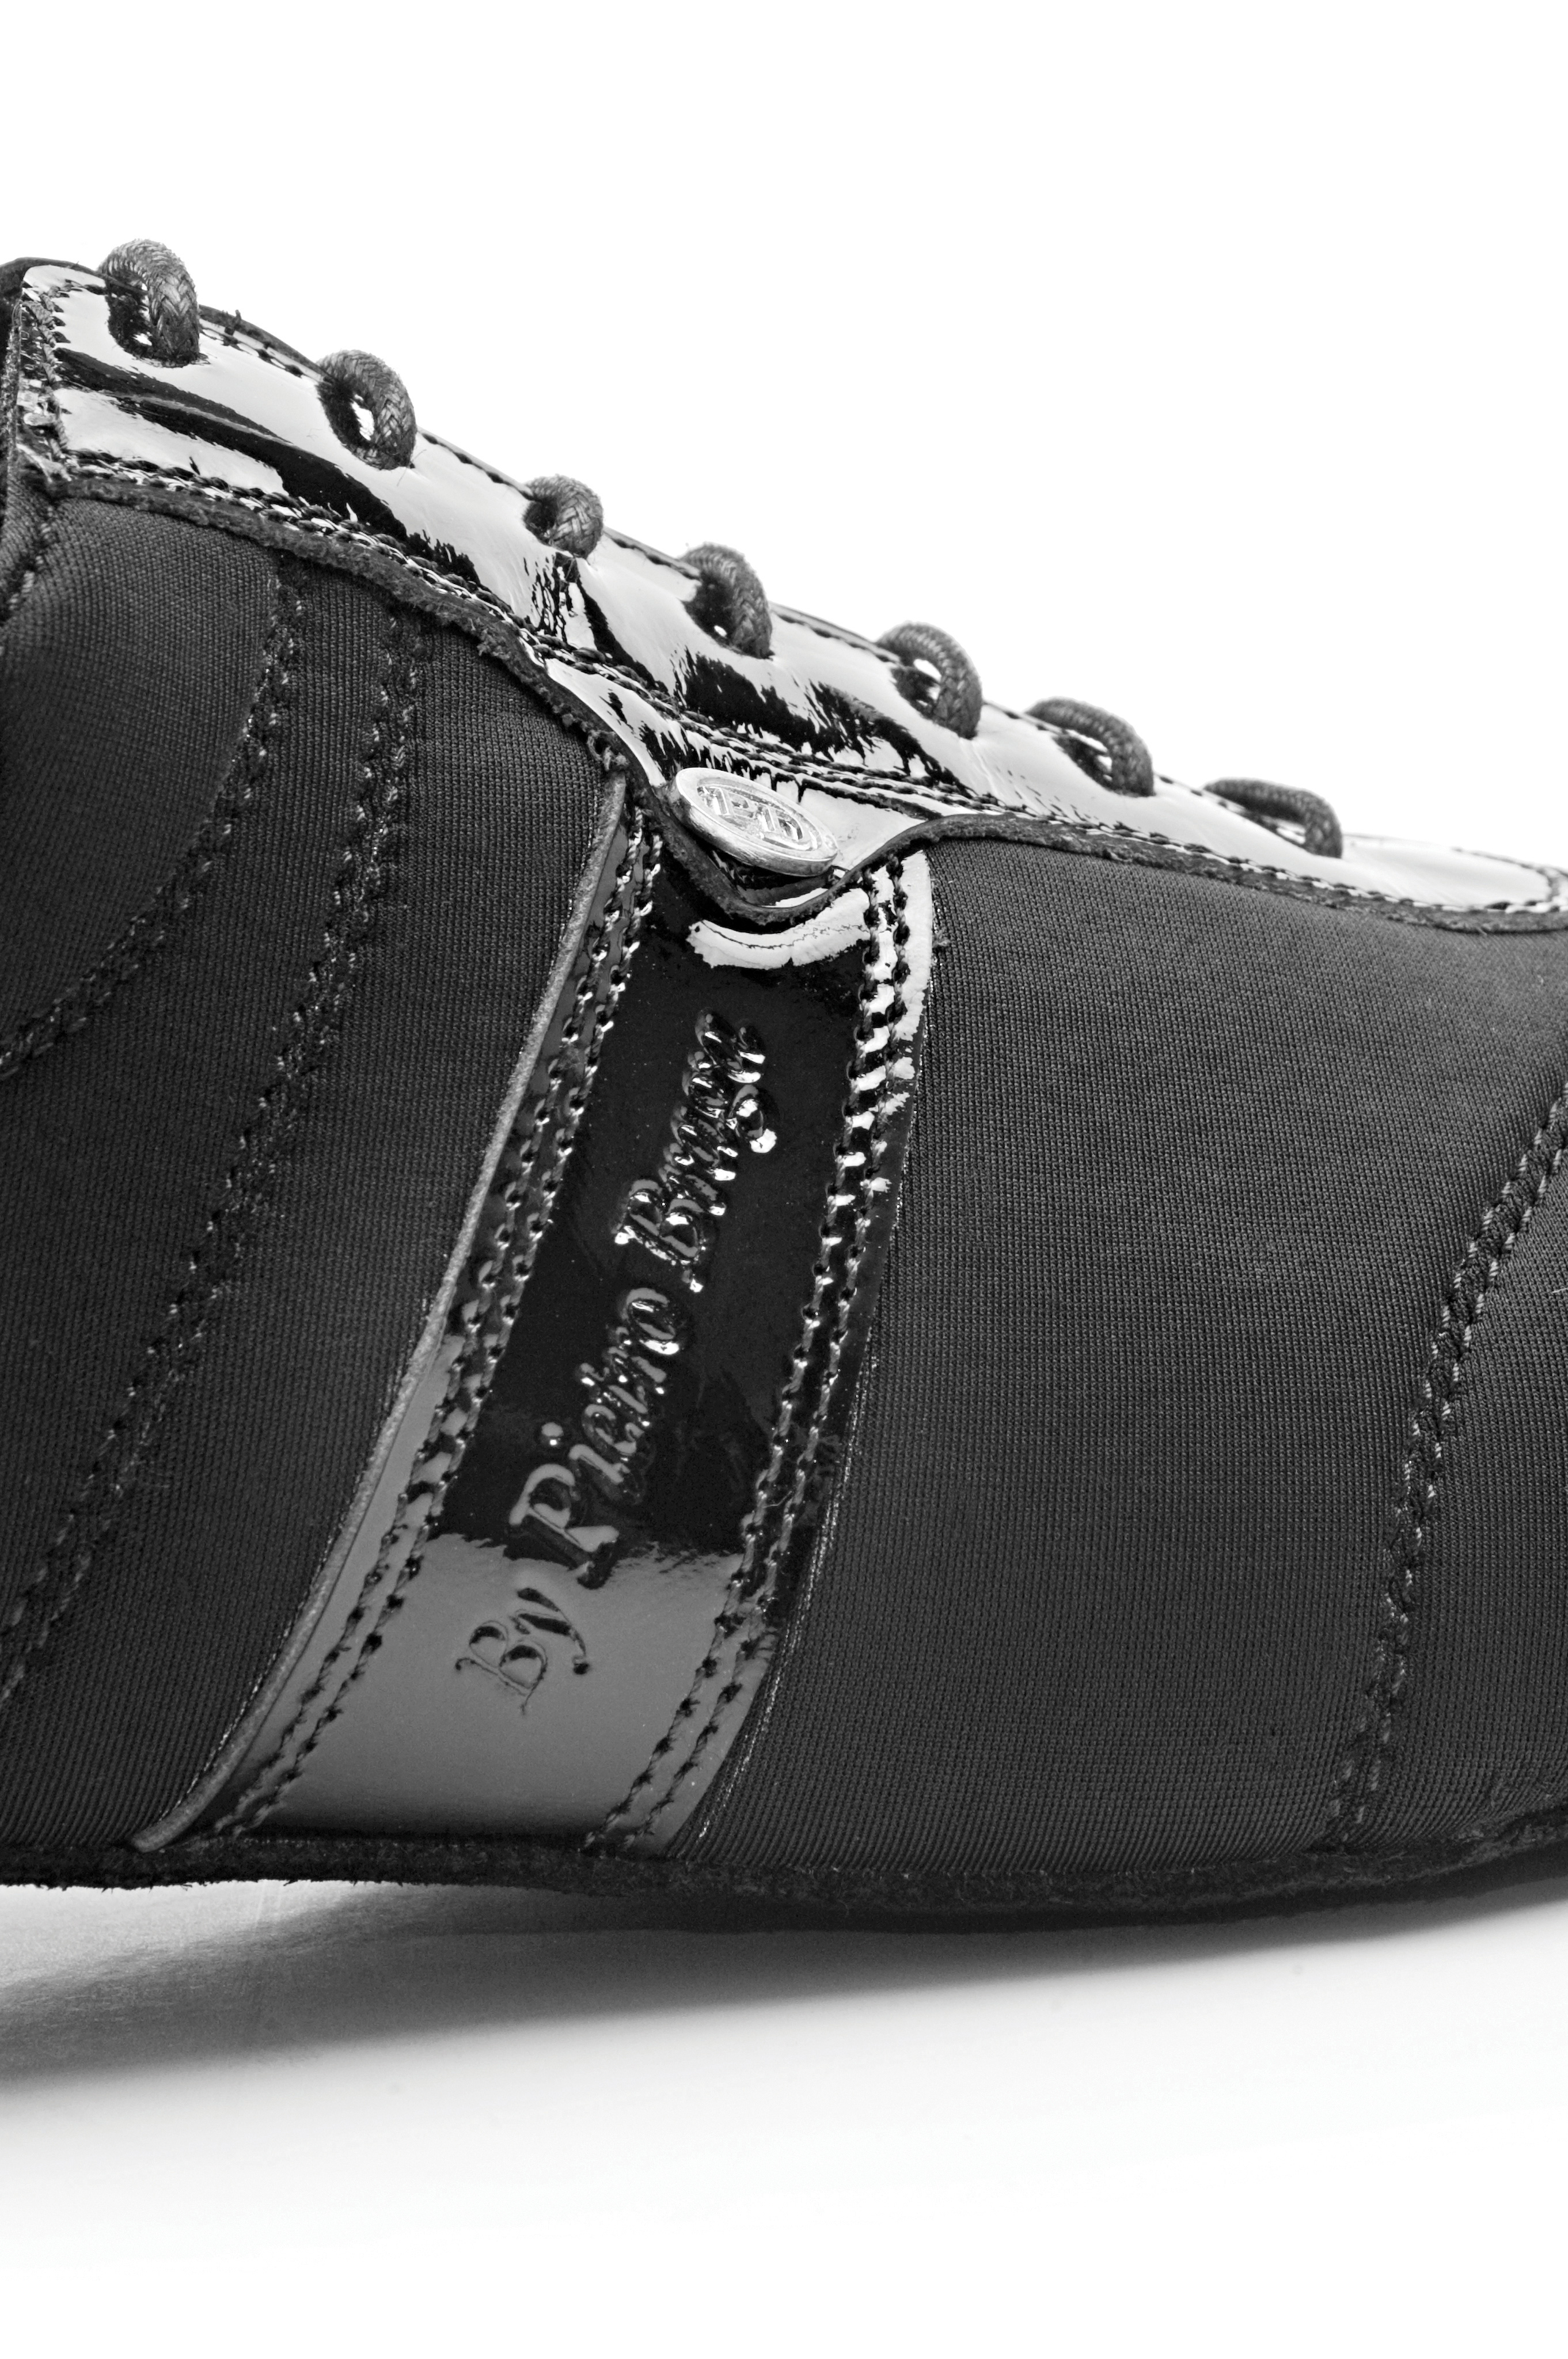 Mens Dance Shoes Grouchy Me Planet